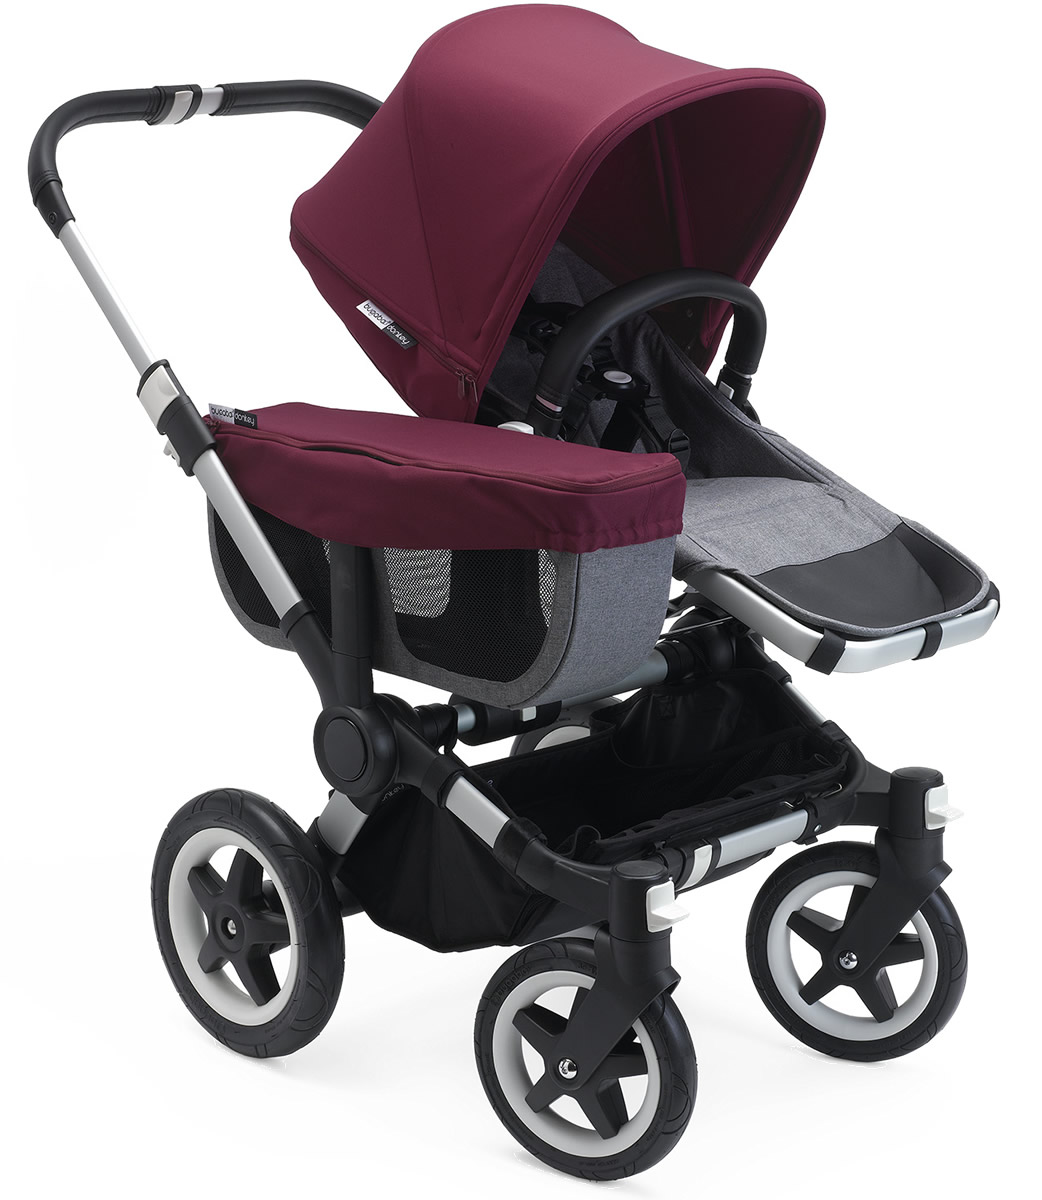 Bugaboo Donkey 2 Mono Complete Stroller - Grey/Red